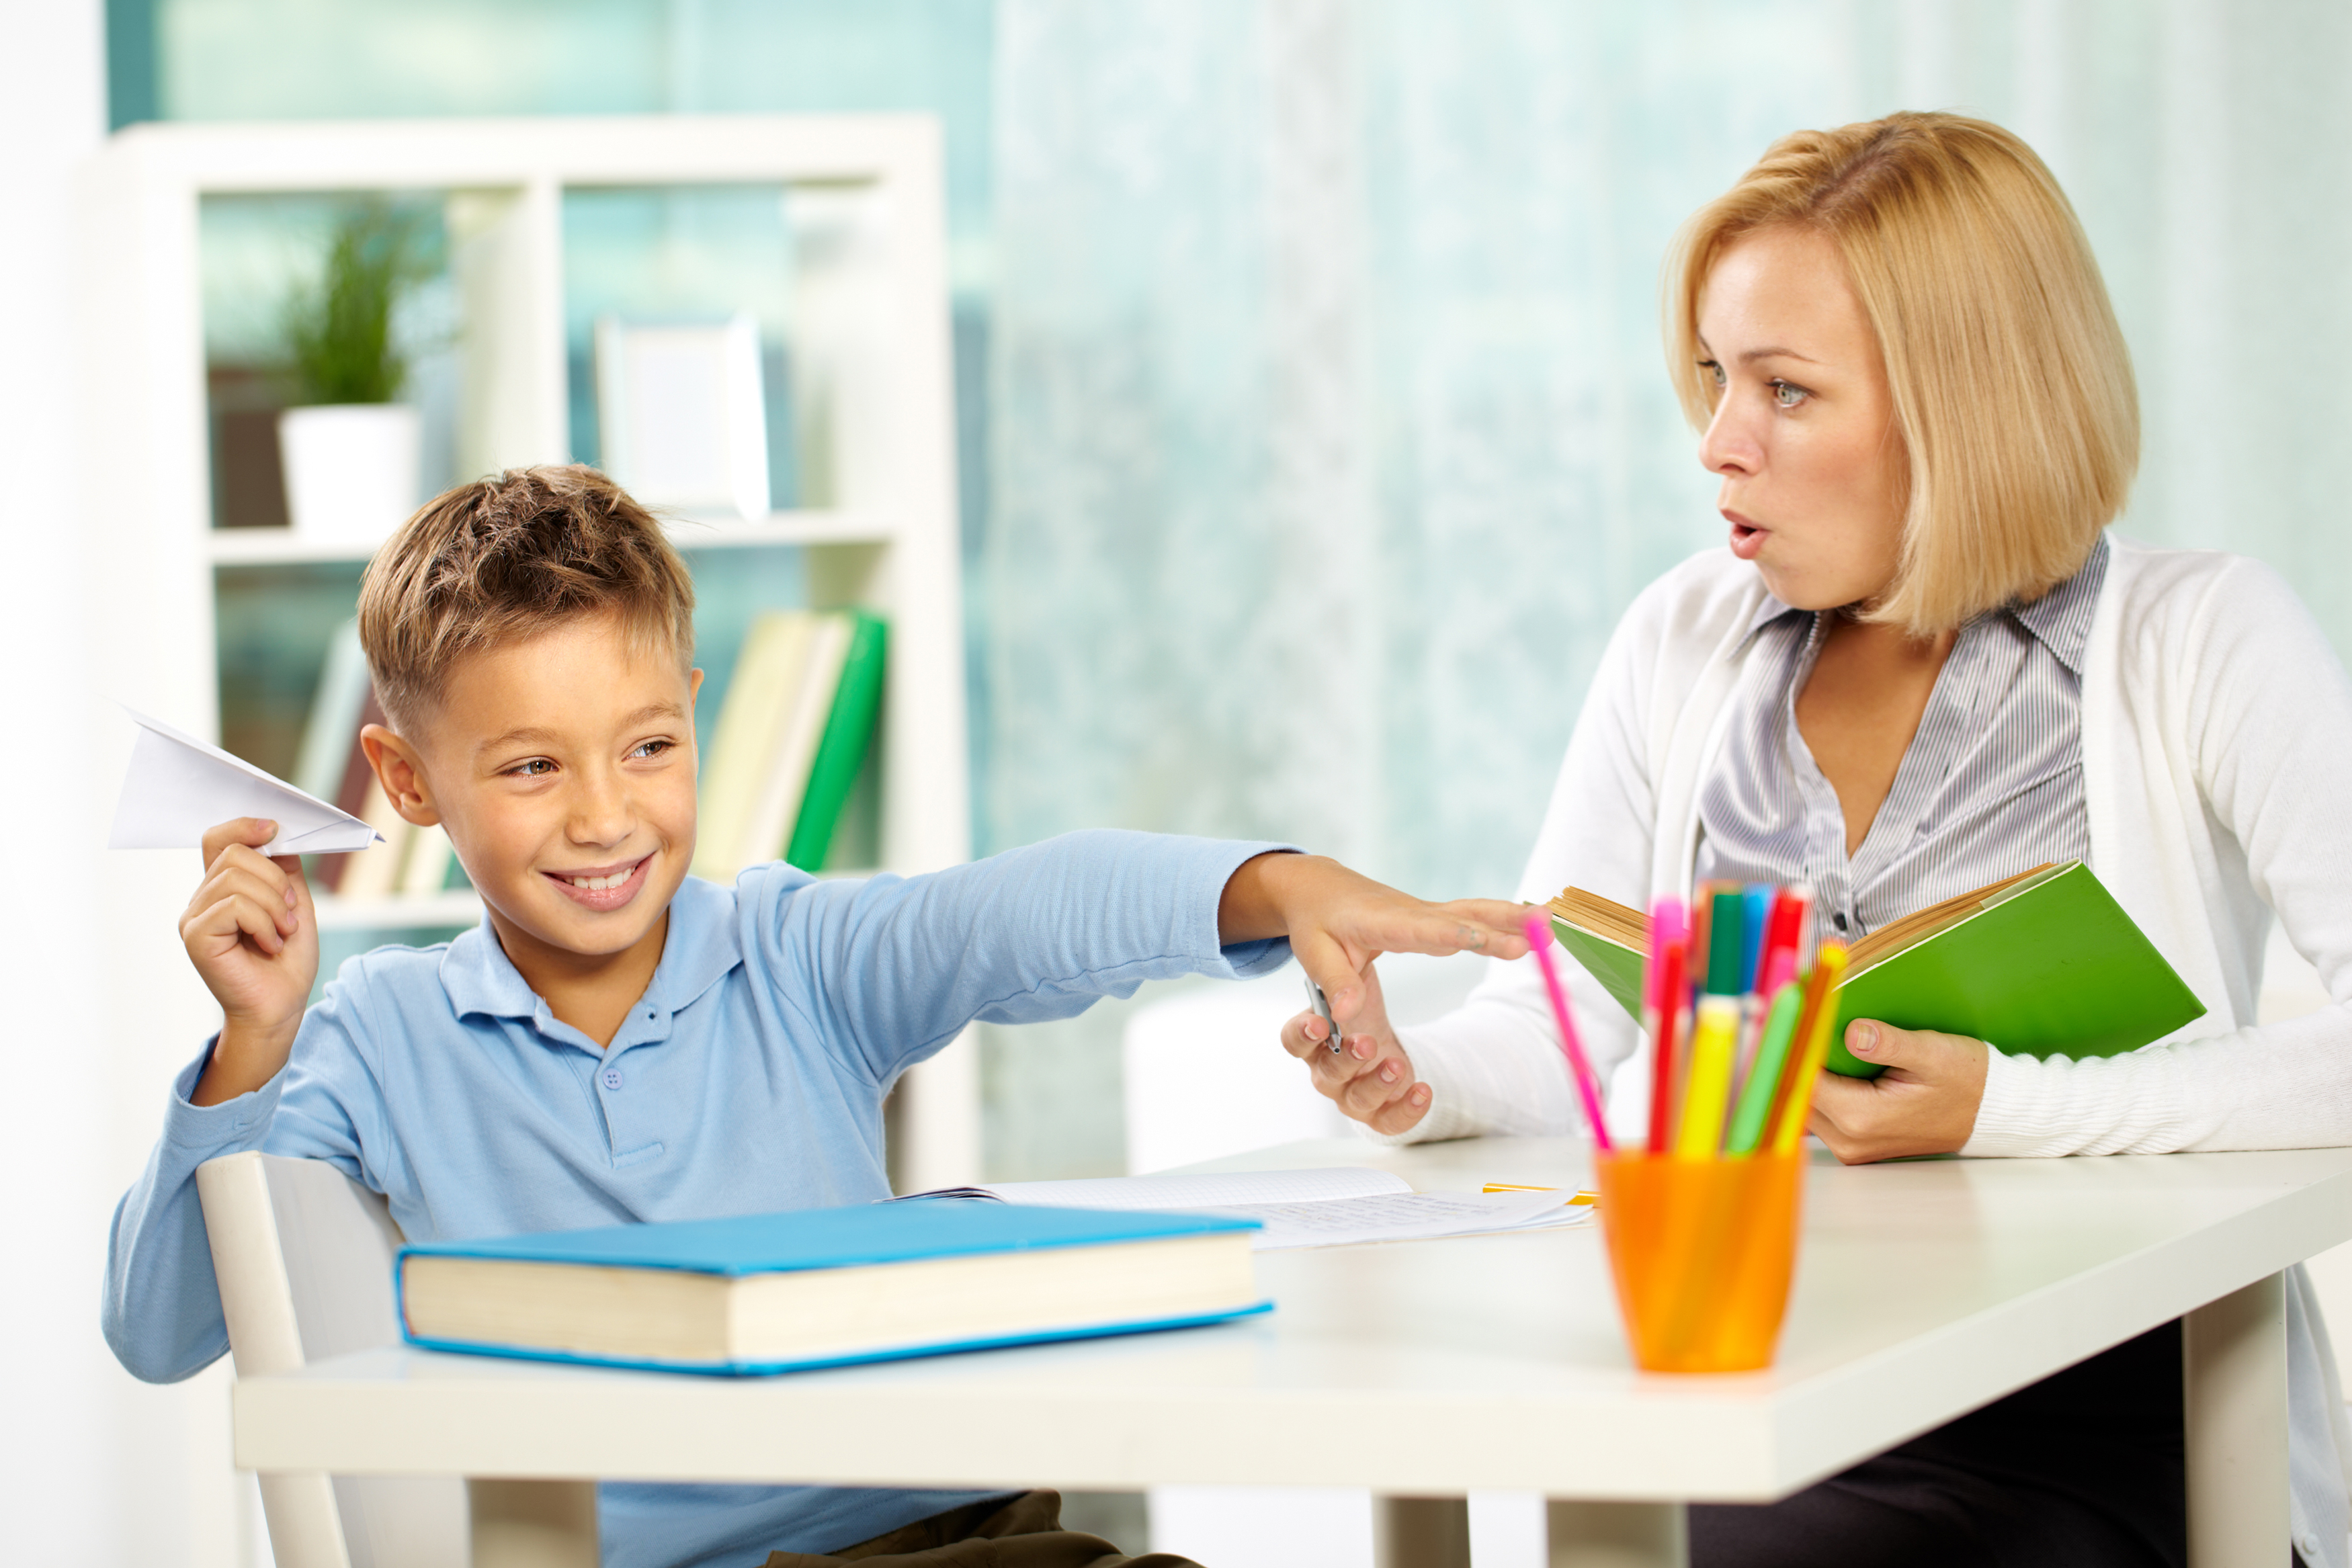 What to Do When Your Child Brings Home Bad Grades?